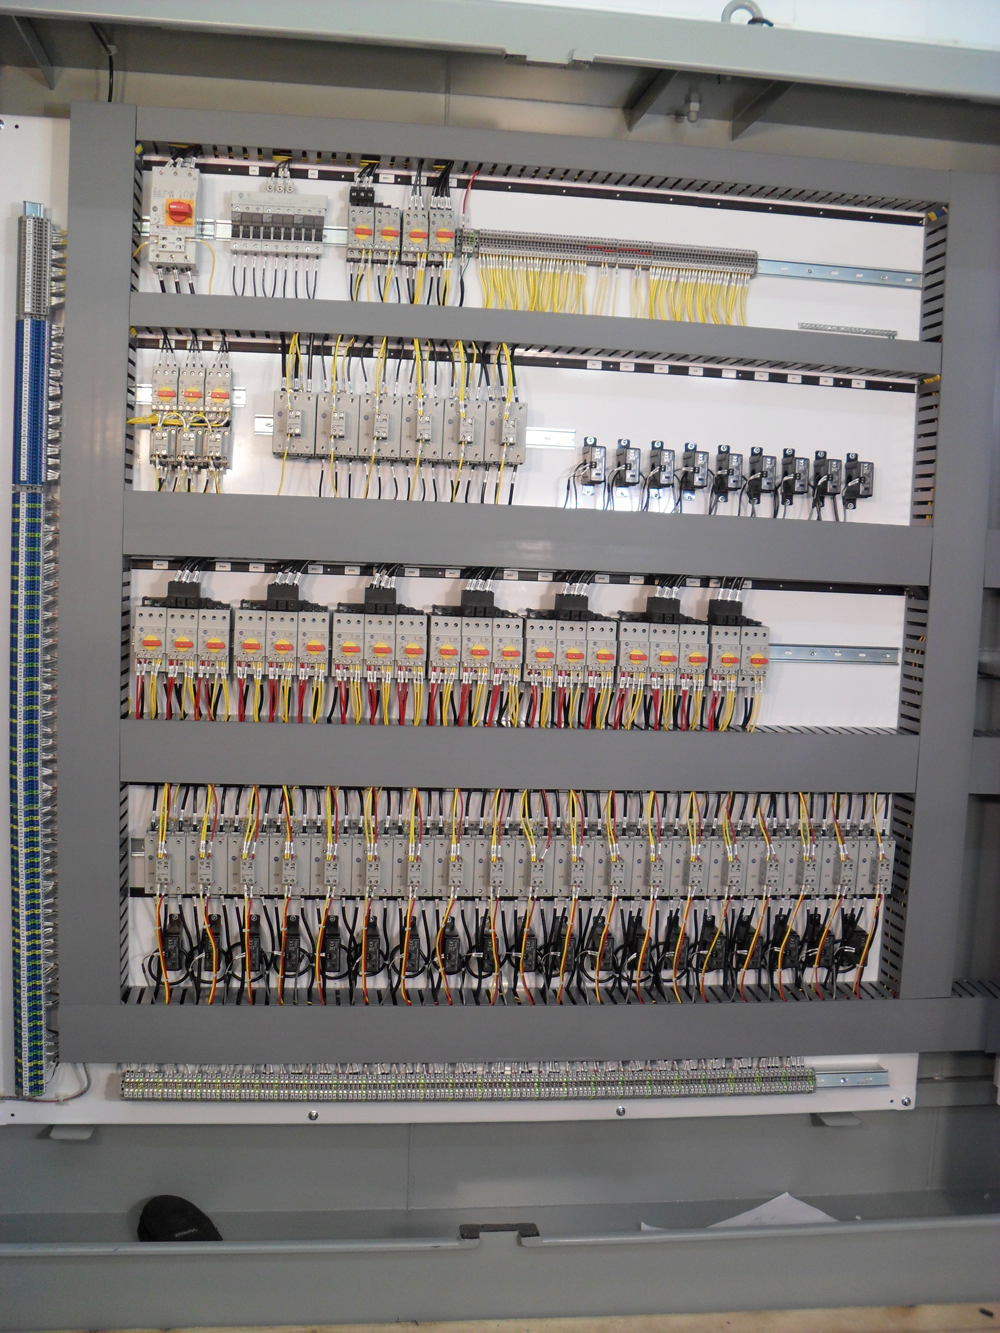 Control Panels Shoreline Power Services Electrical